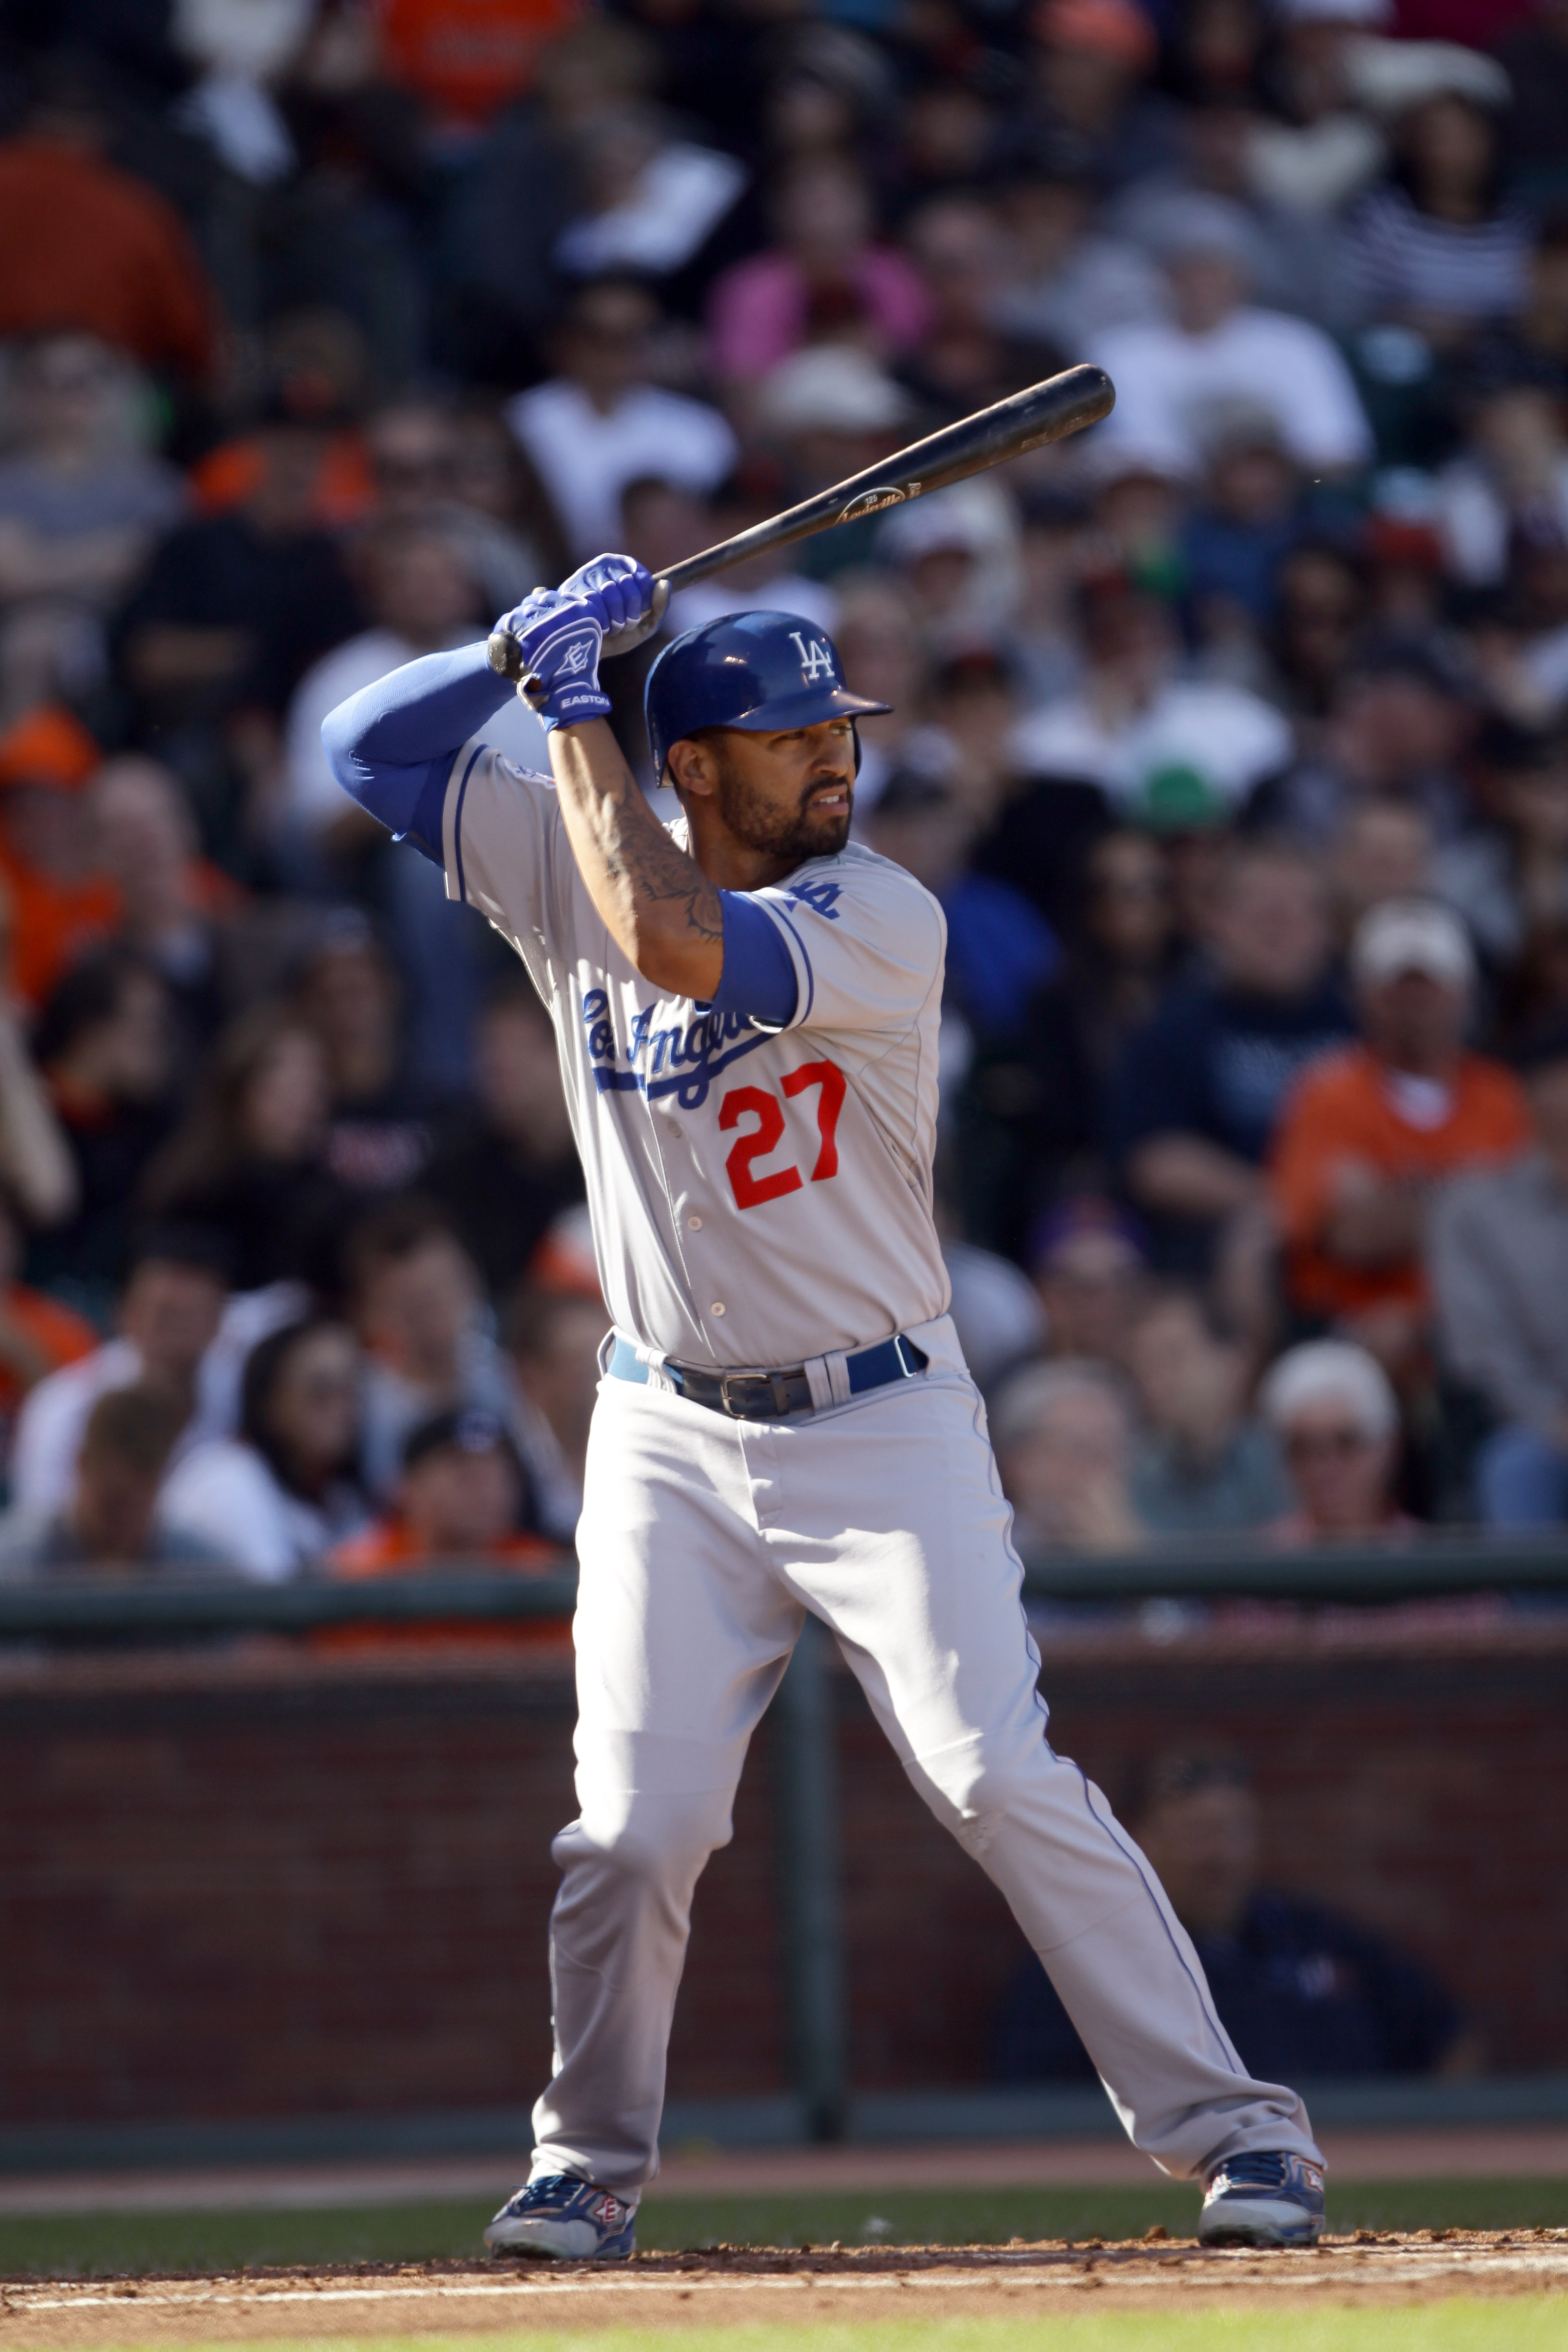 SAN FRANCISCO - AUGUST 01:  Matt Kemp #27 of the Los Angeles Dodgers bats against the San Francisco Giants at AT&T Park on August 1, 2010 in San Francisco, California.  (Photo by Ezra Shaw/Getty Images)